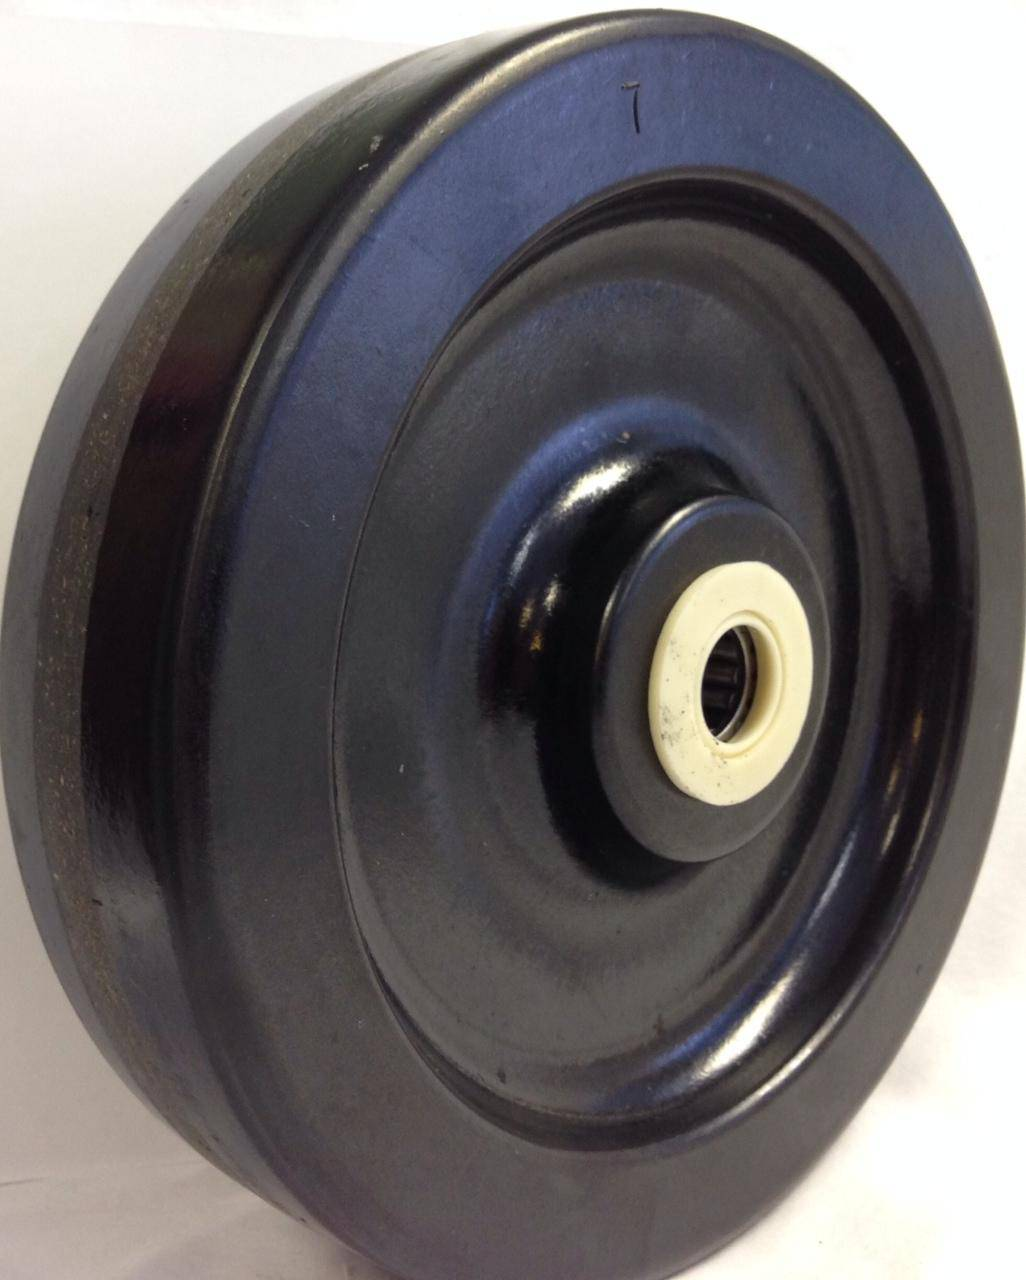 8″ Phenolic Wheel With 3-1/4″ Hub 1″ Roller Bearing 2500 Lbs Cap